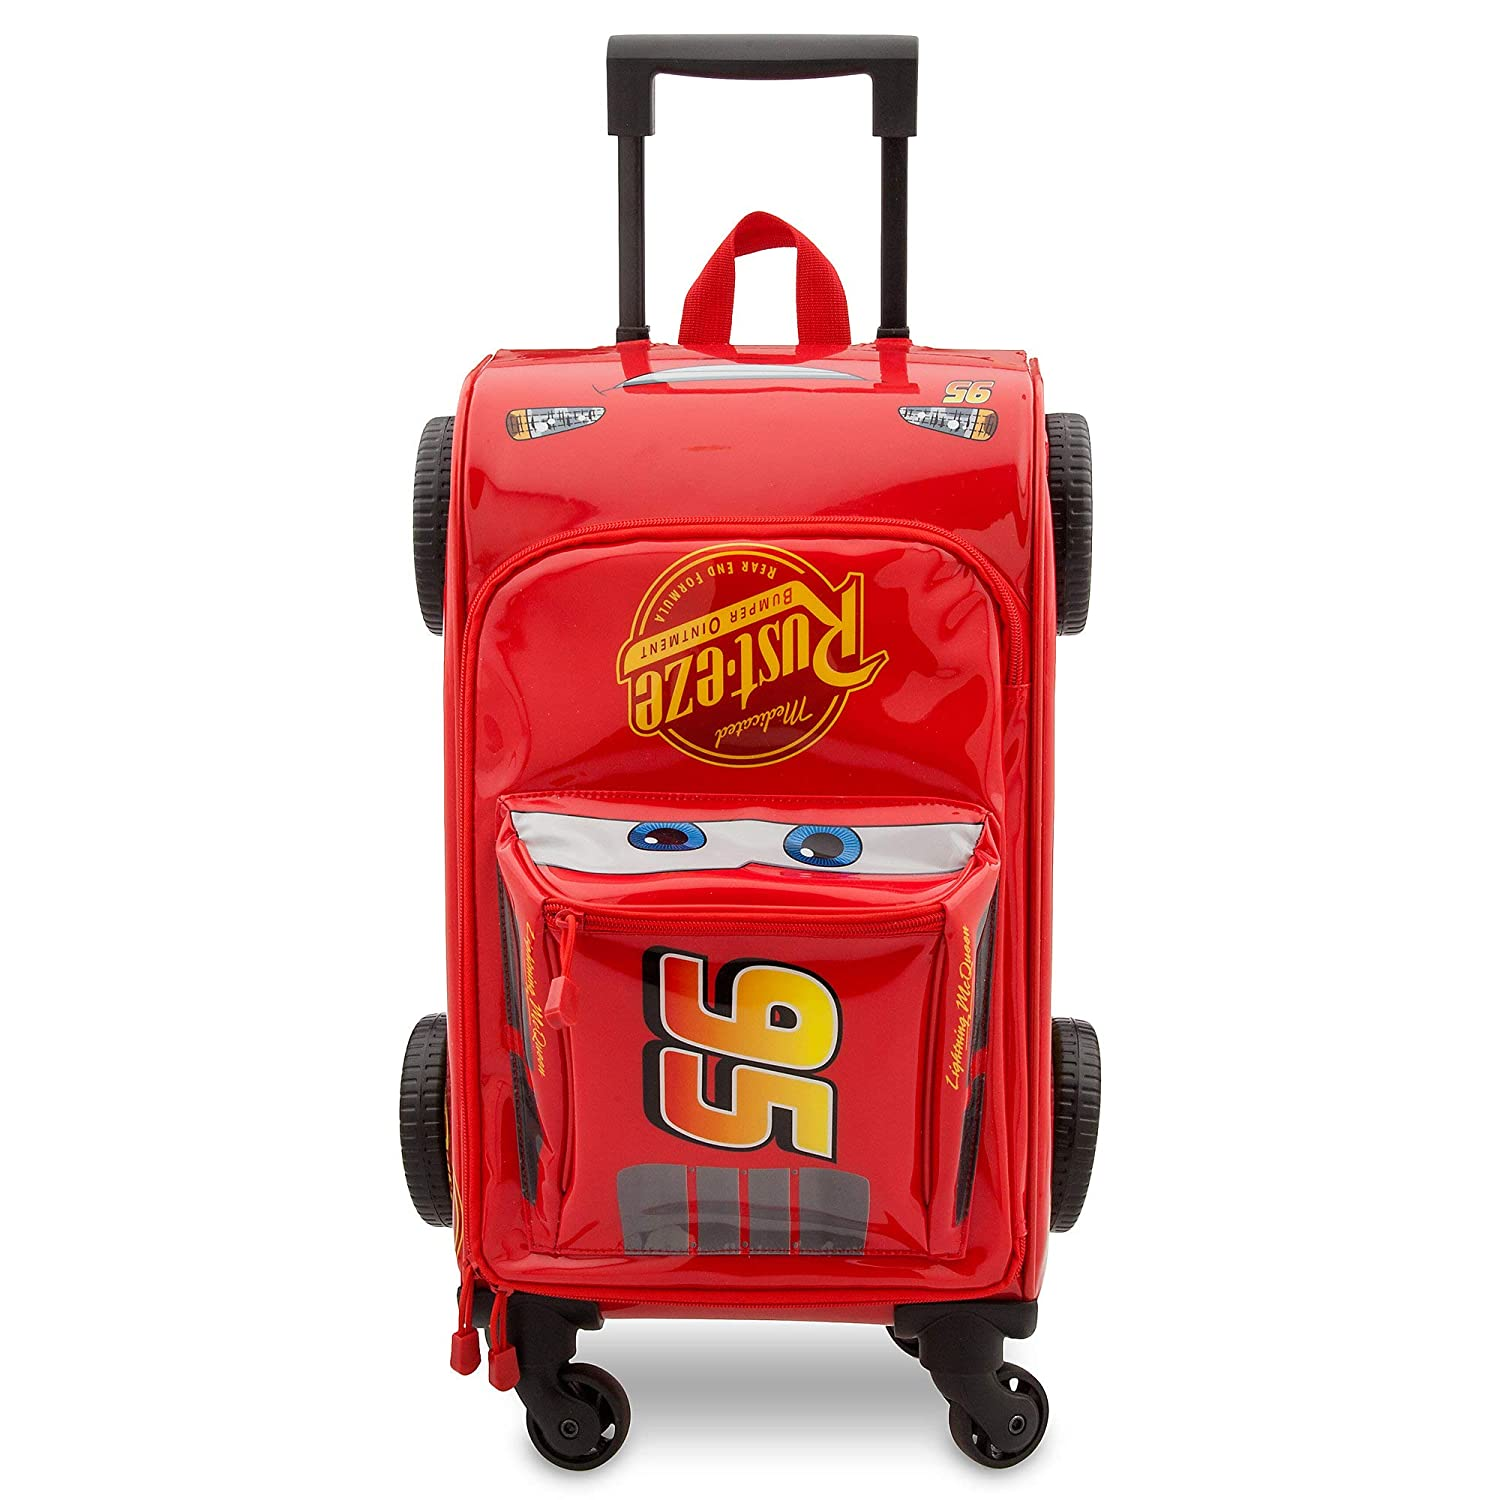 Disney Lightning McQueen Rolling Luggage - Cars 3 Red427243833880